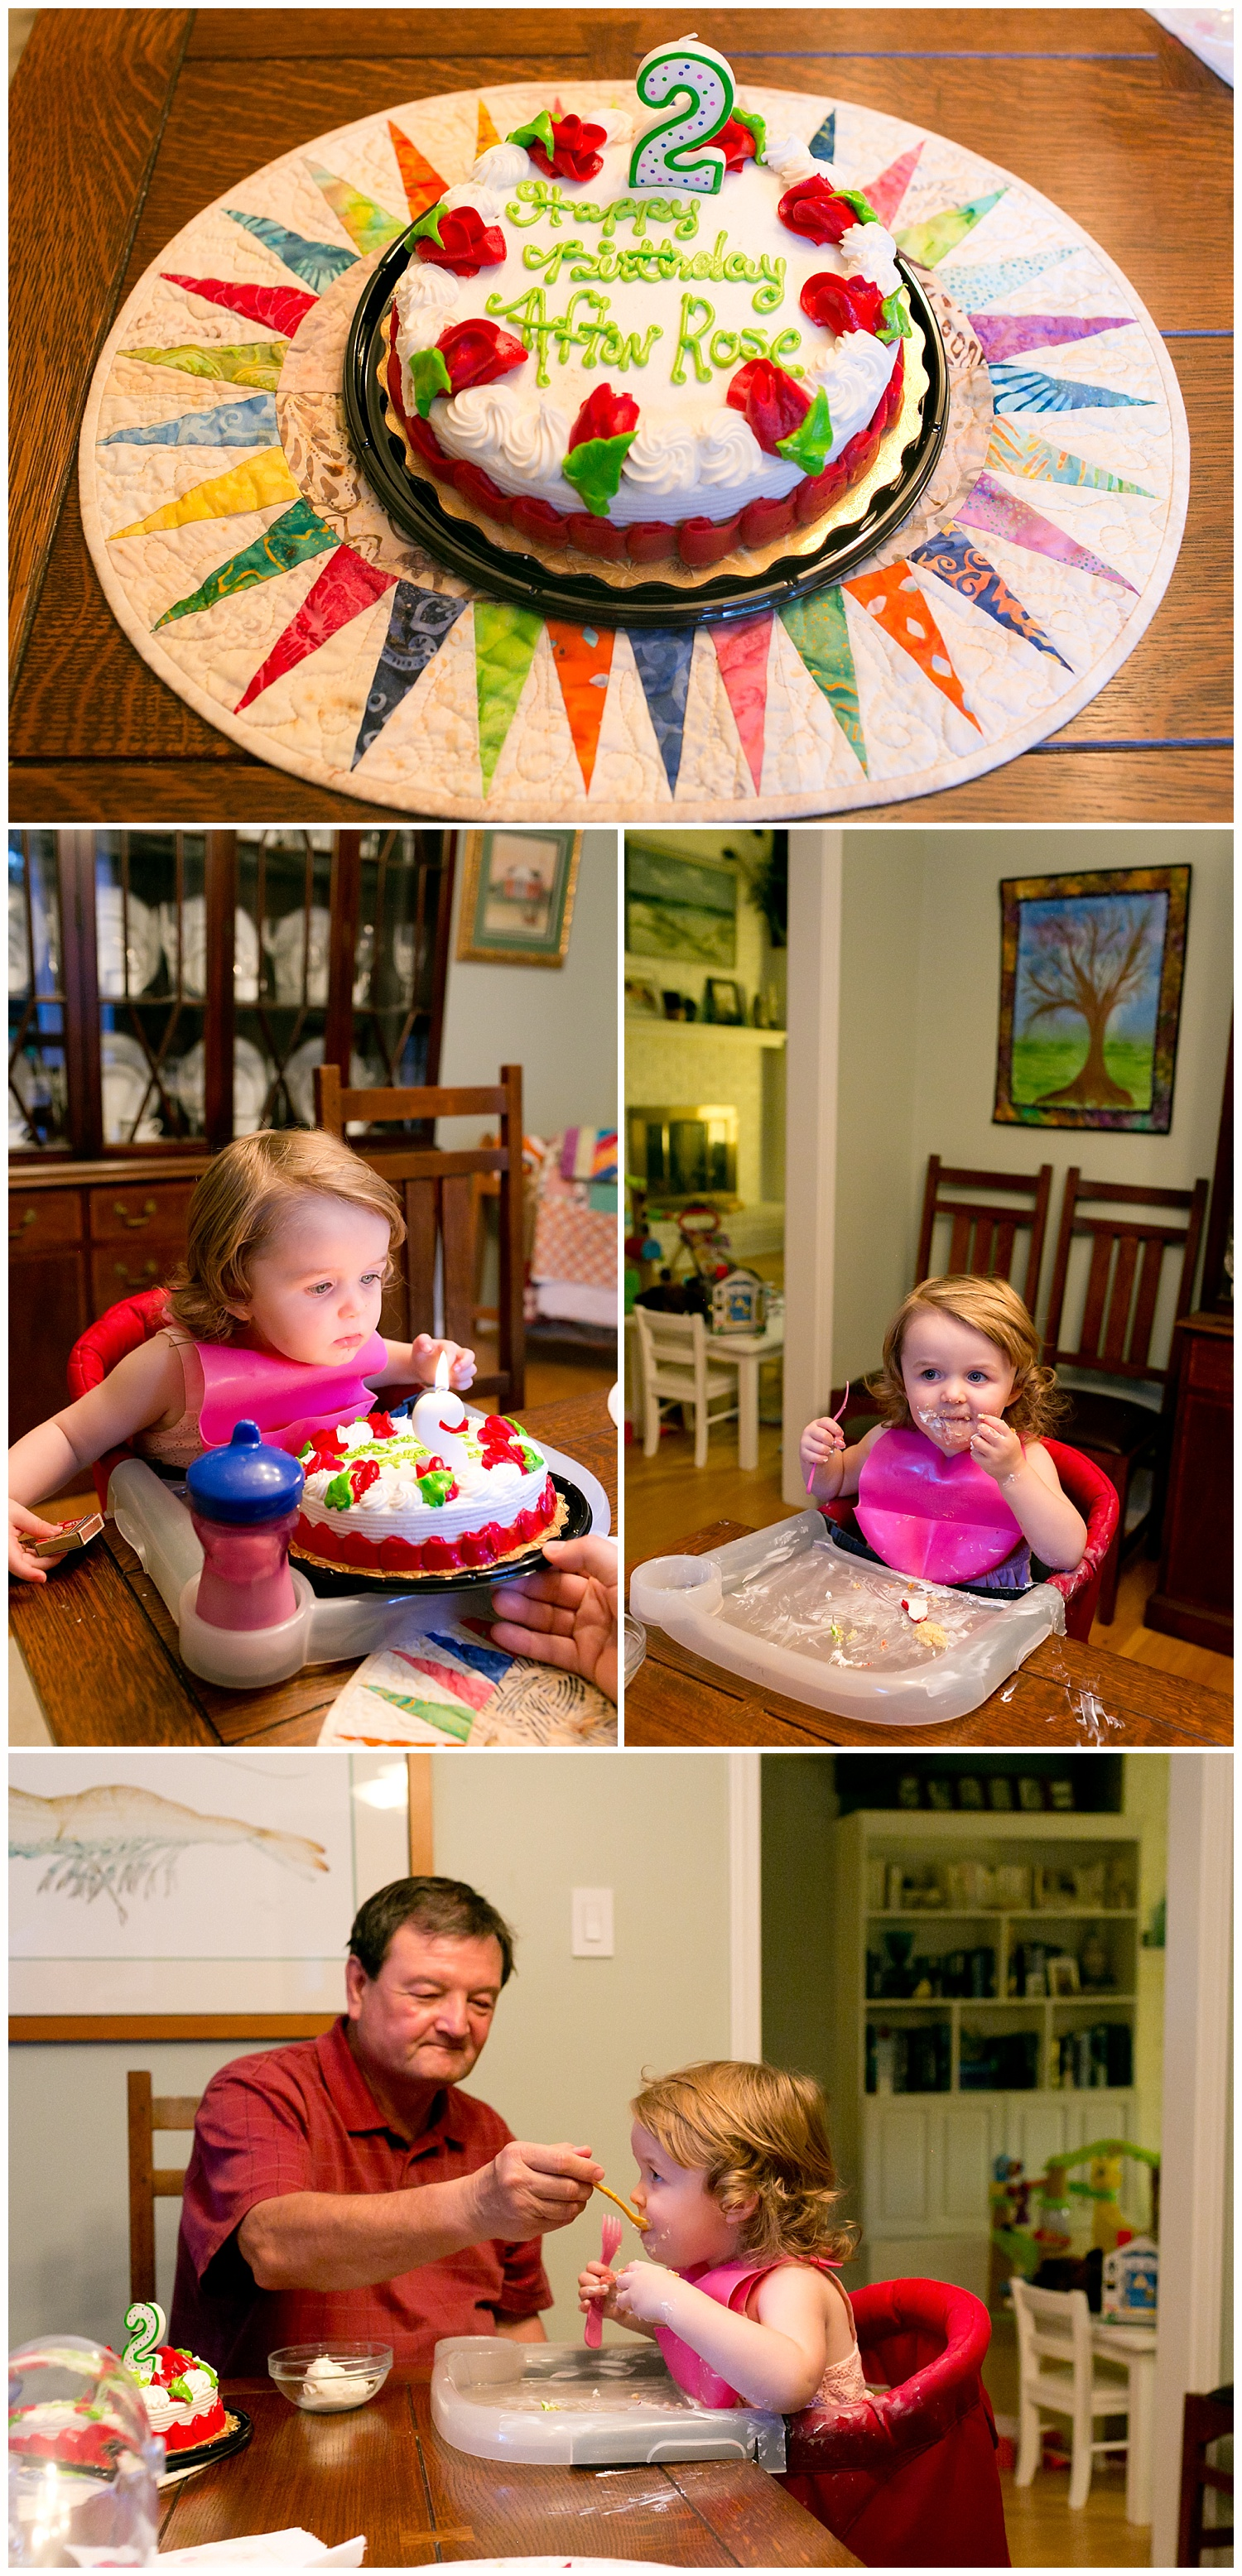 two-year-old's birthday celebration at home